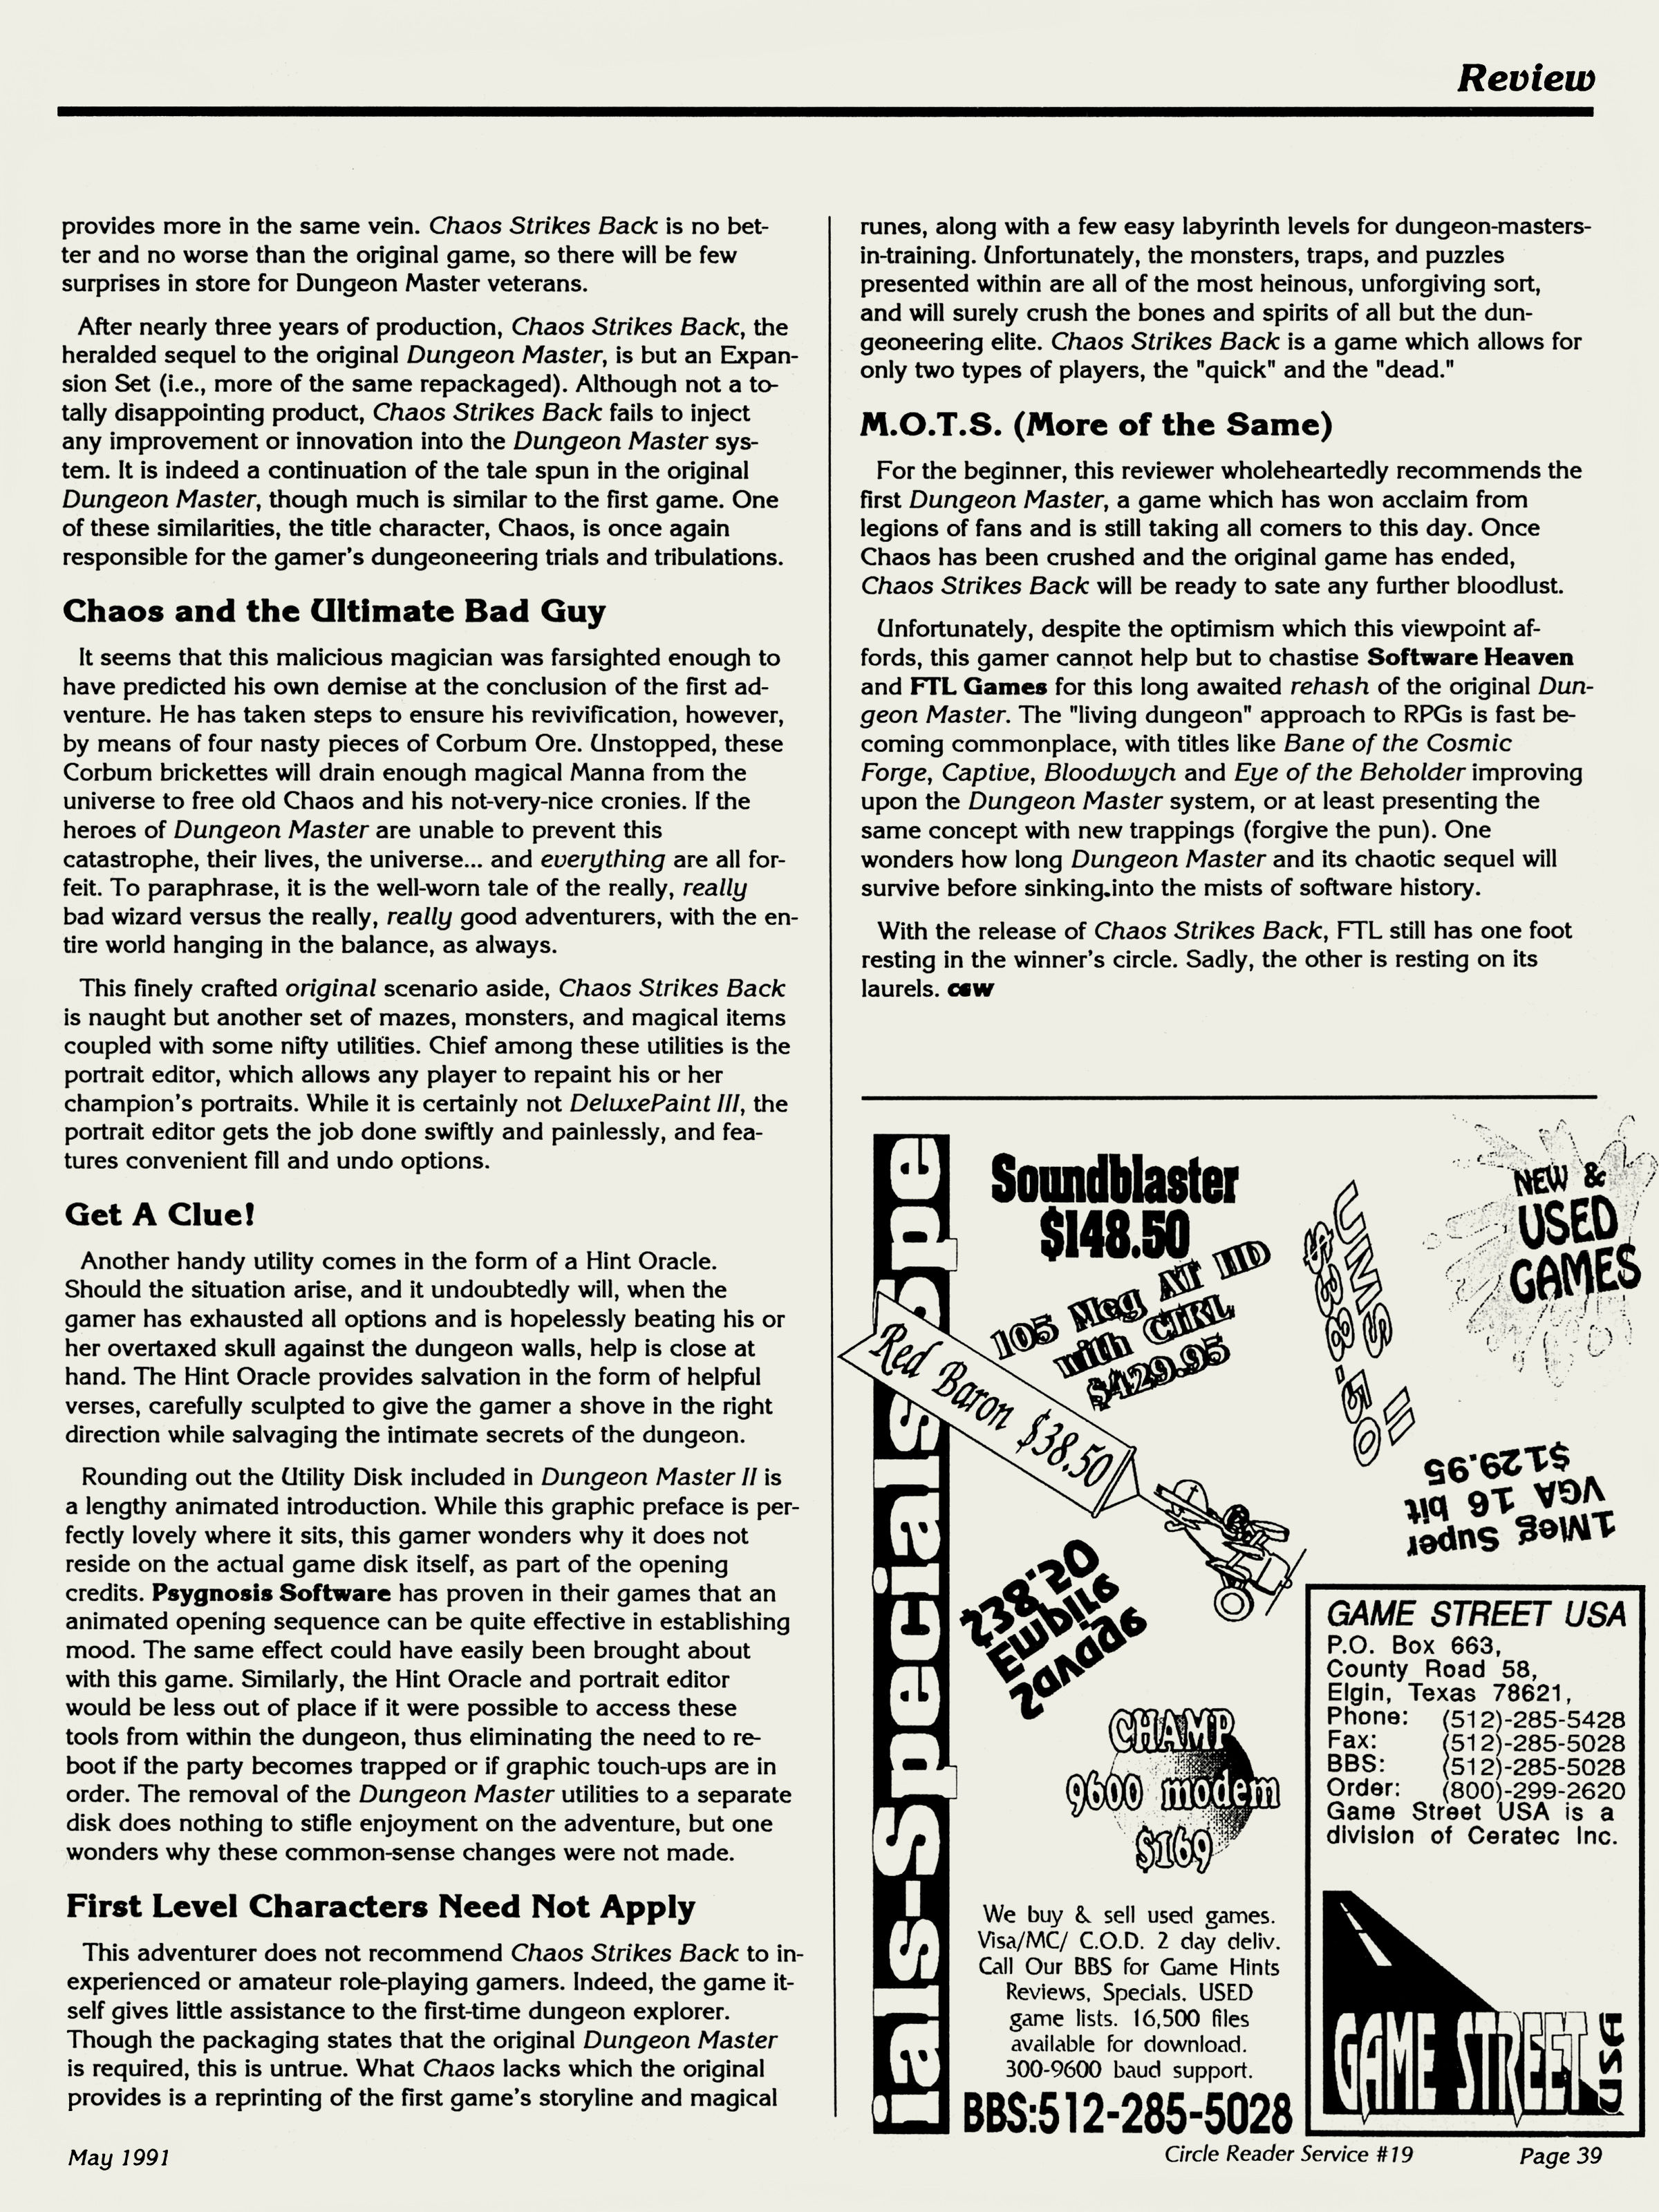 Chaos Strikes Back for Amiga Review published in American magazine 'Computer Gaming World', Issue #82, May 1991, Page 39